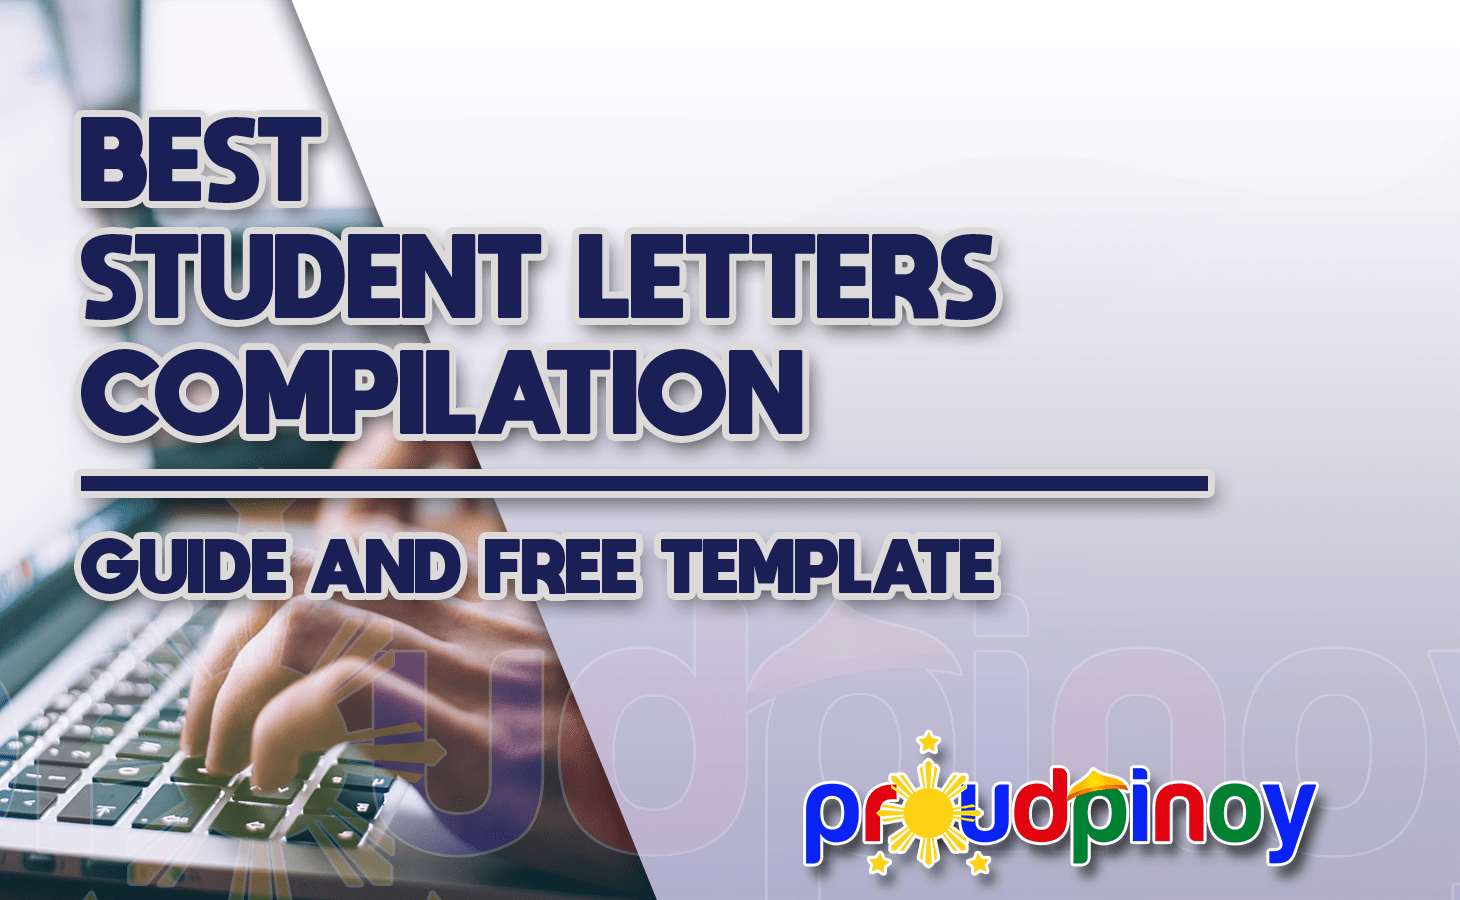 Best student letters compilation